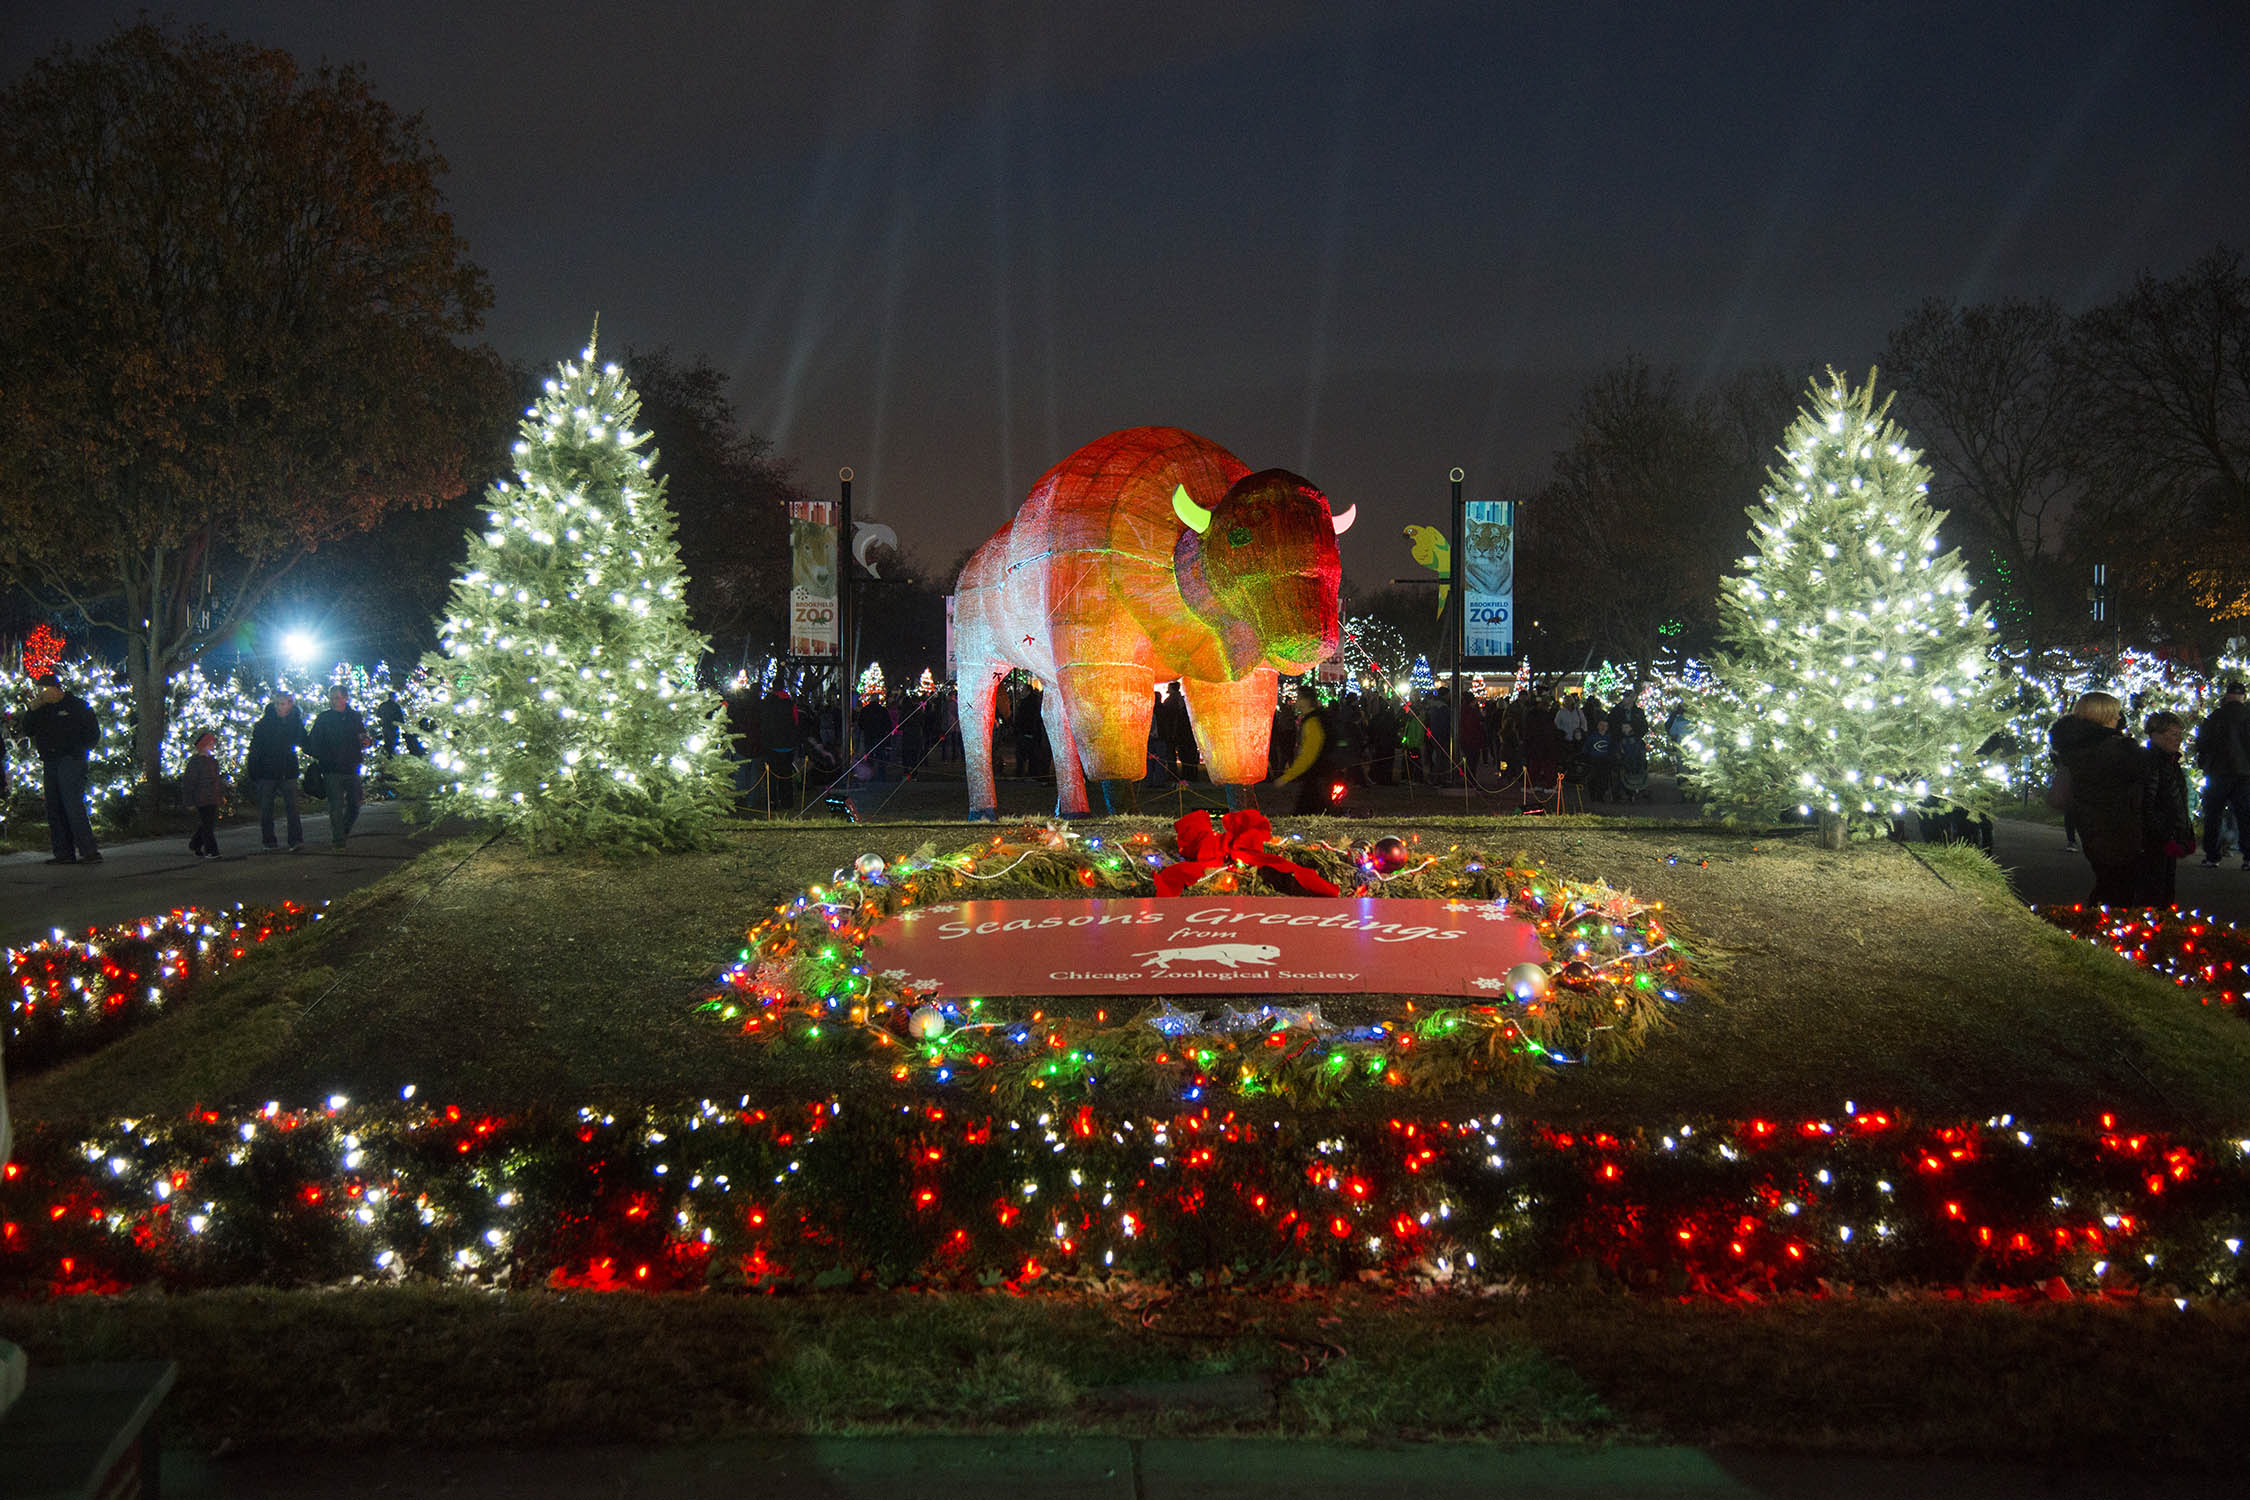 Brookfield Zoo Christmas Lights 2019 Chicago Zoological Society   Holiday Magic Festivities Light up